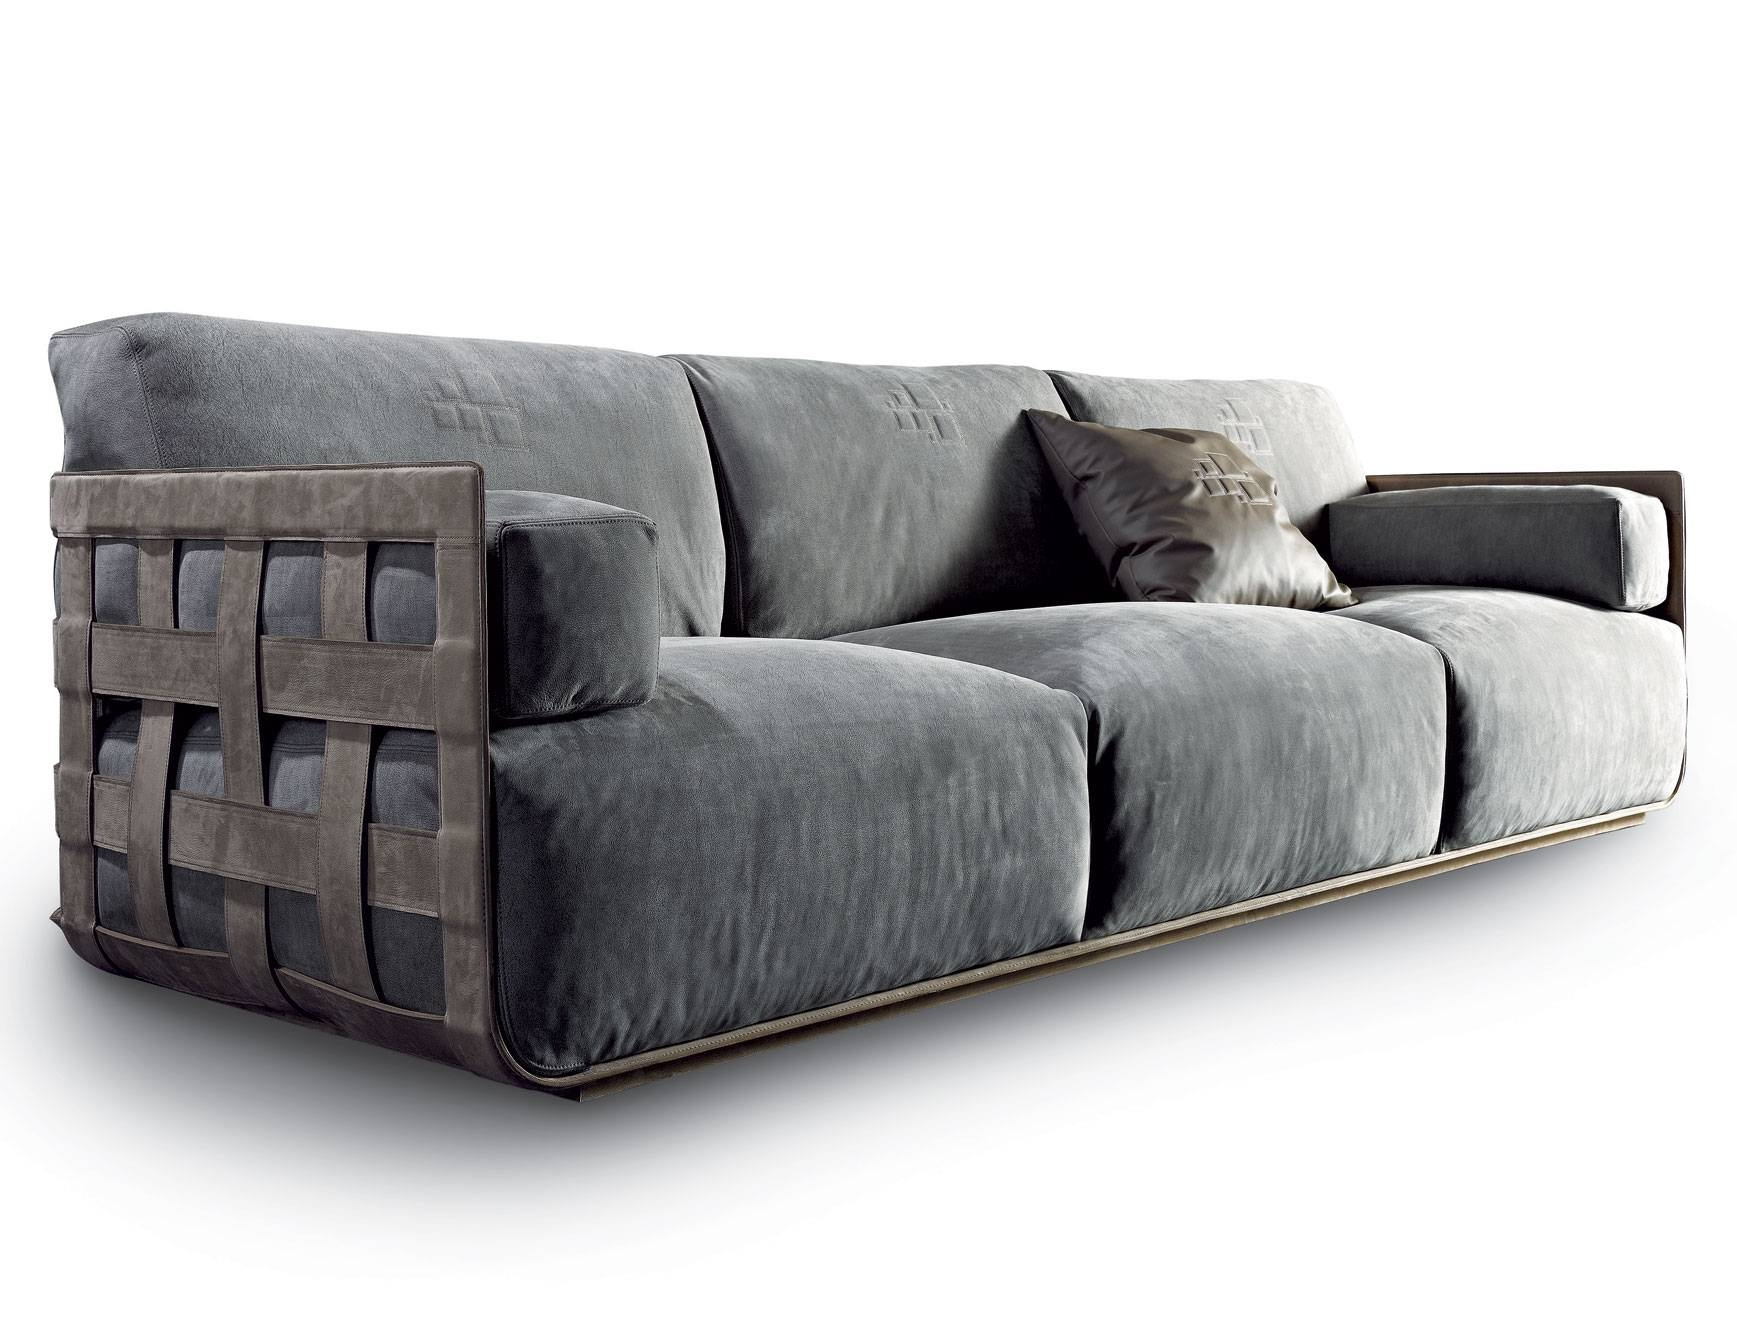 Nella Vetrina Rugiano Braid Grey Upholstered In Linen/velvet Sofa for Sofas And Chairs (Image 10 of 30)